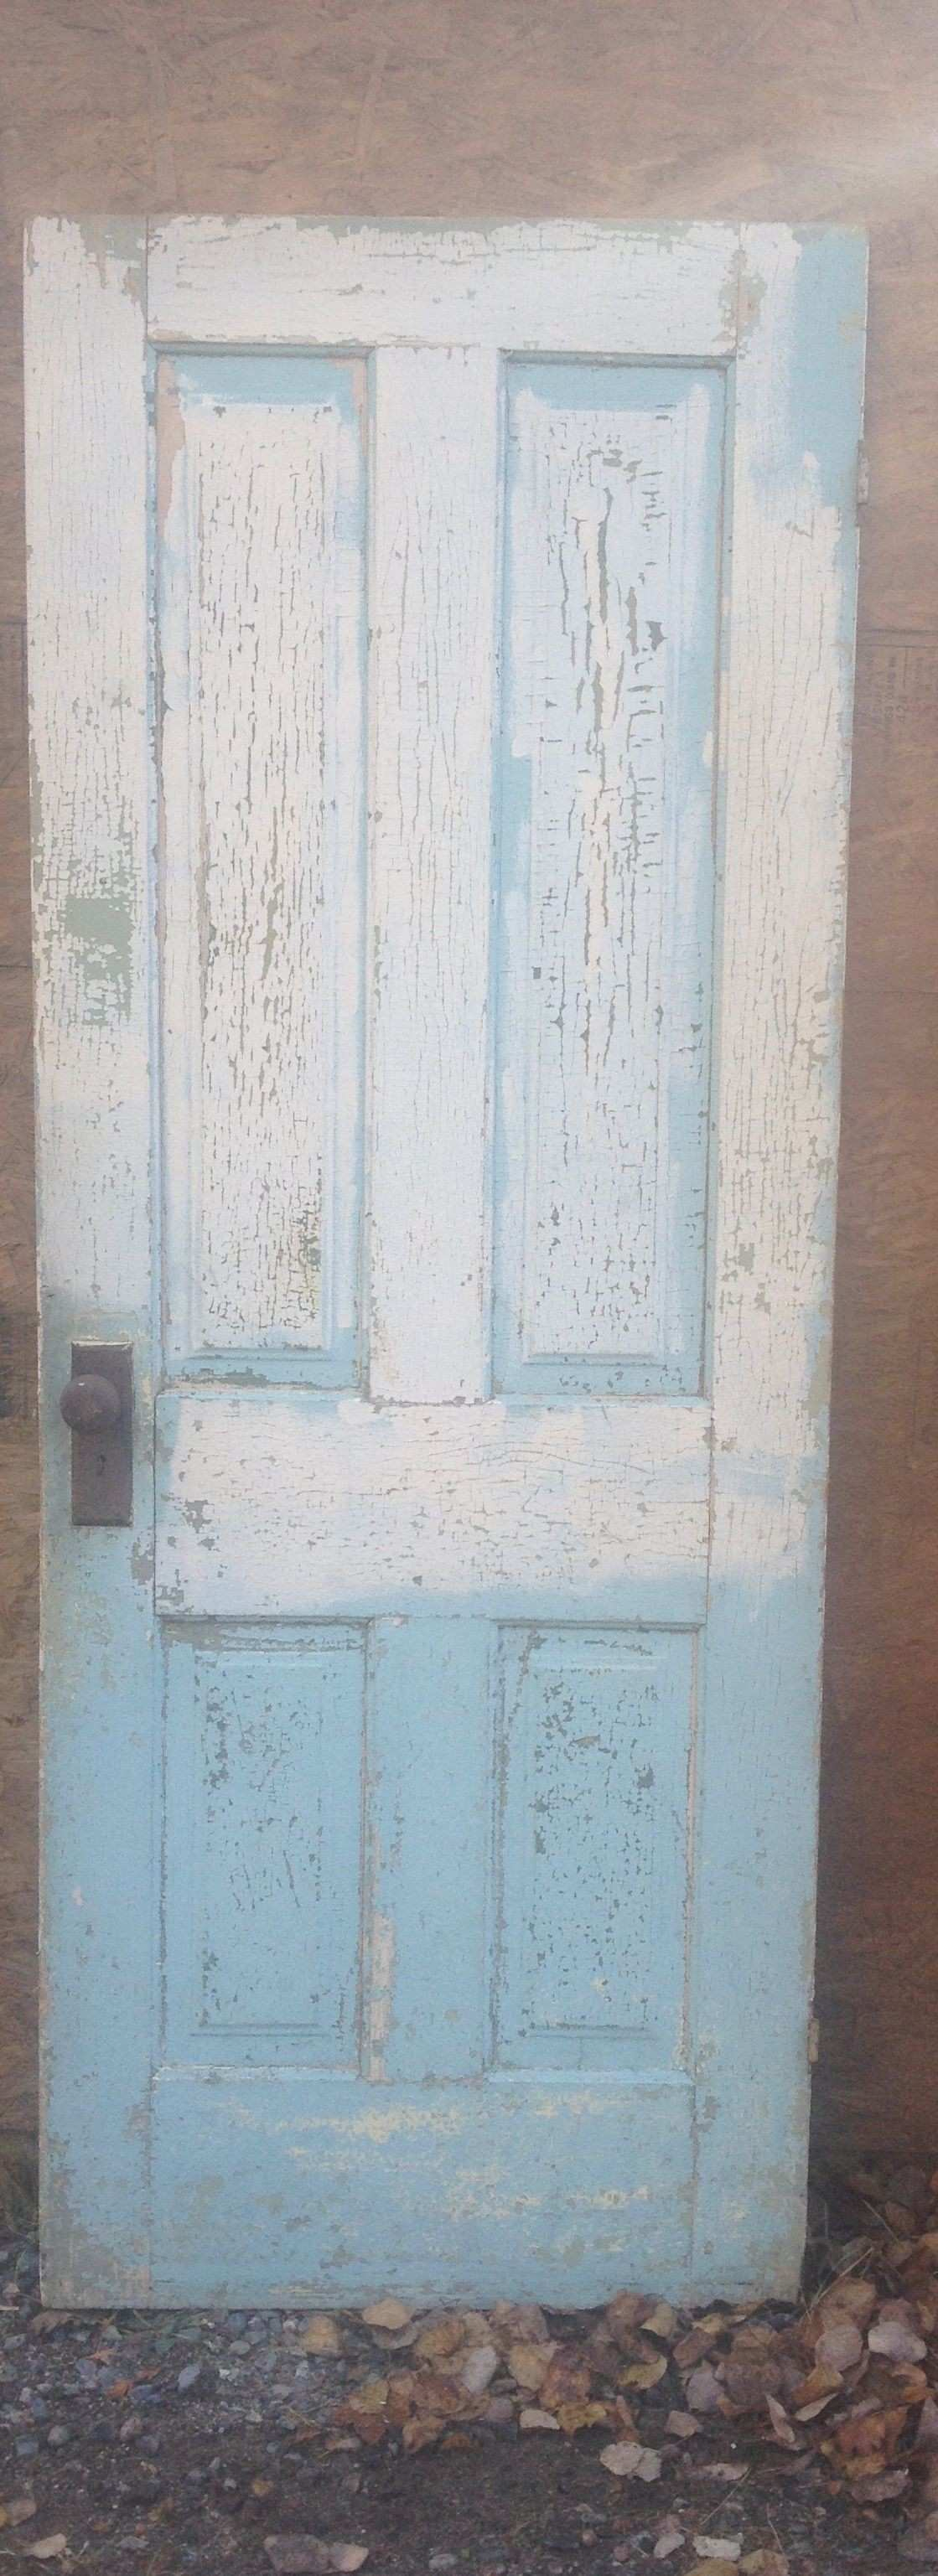 Solid wood multi painted peeling crackling door would make a Great